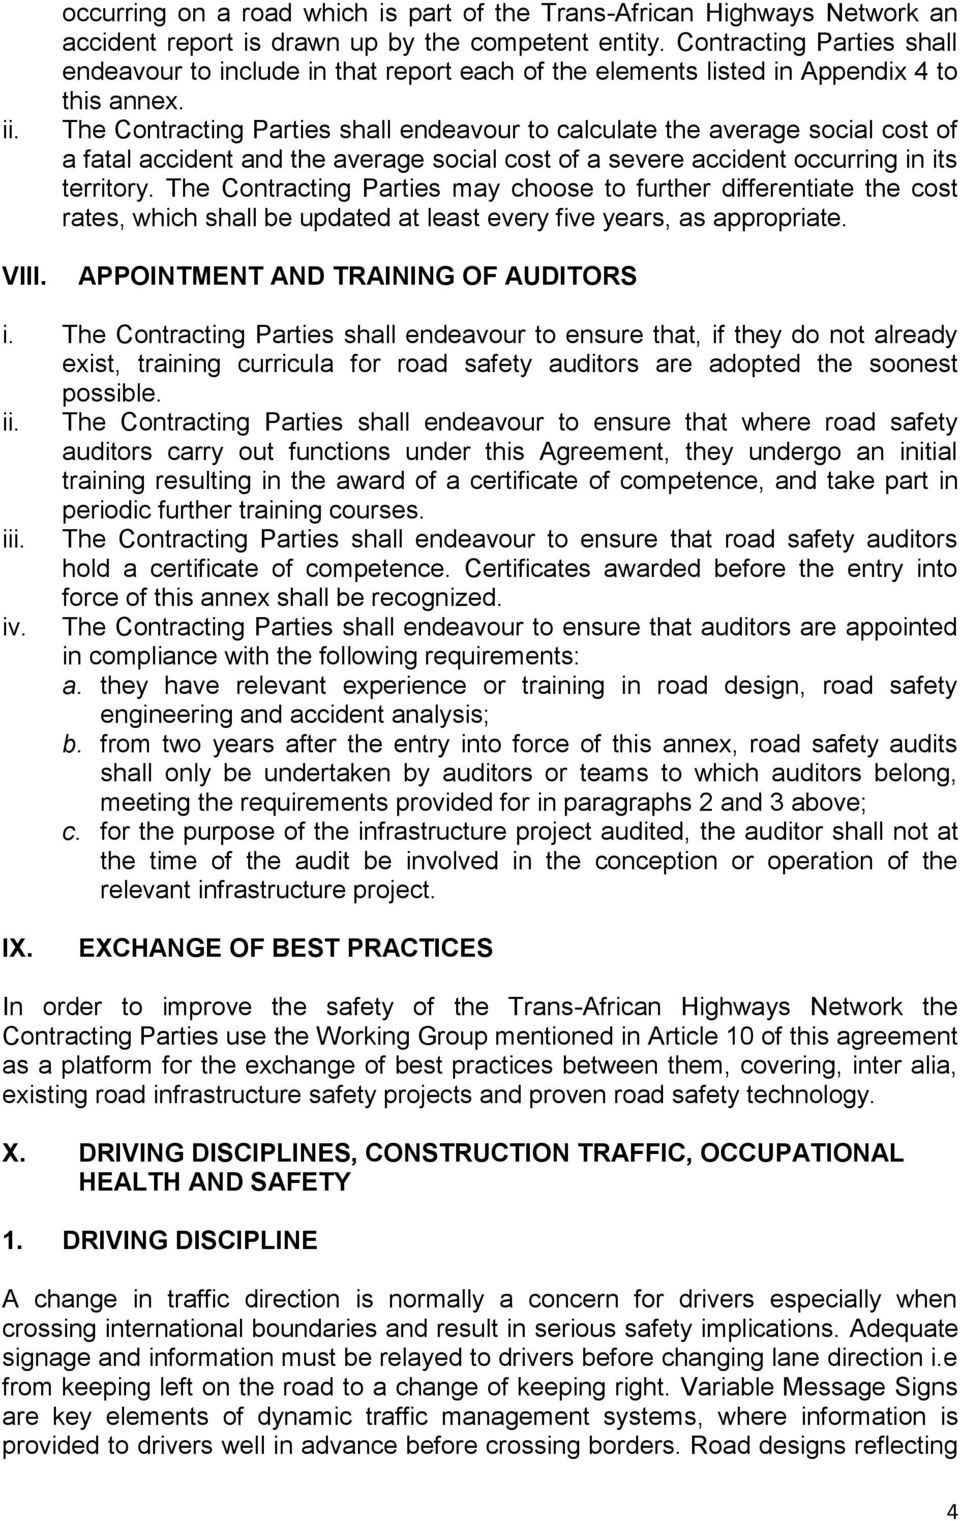 The Contracting Parties shall endeavour to calculate the average social cost of a fatal accident and the average social cost of a severe accident occurring in its territory.